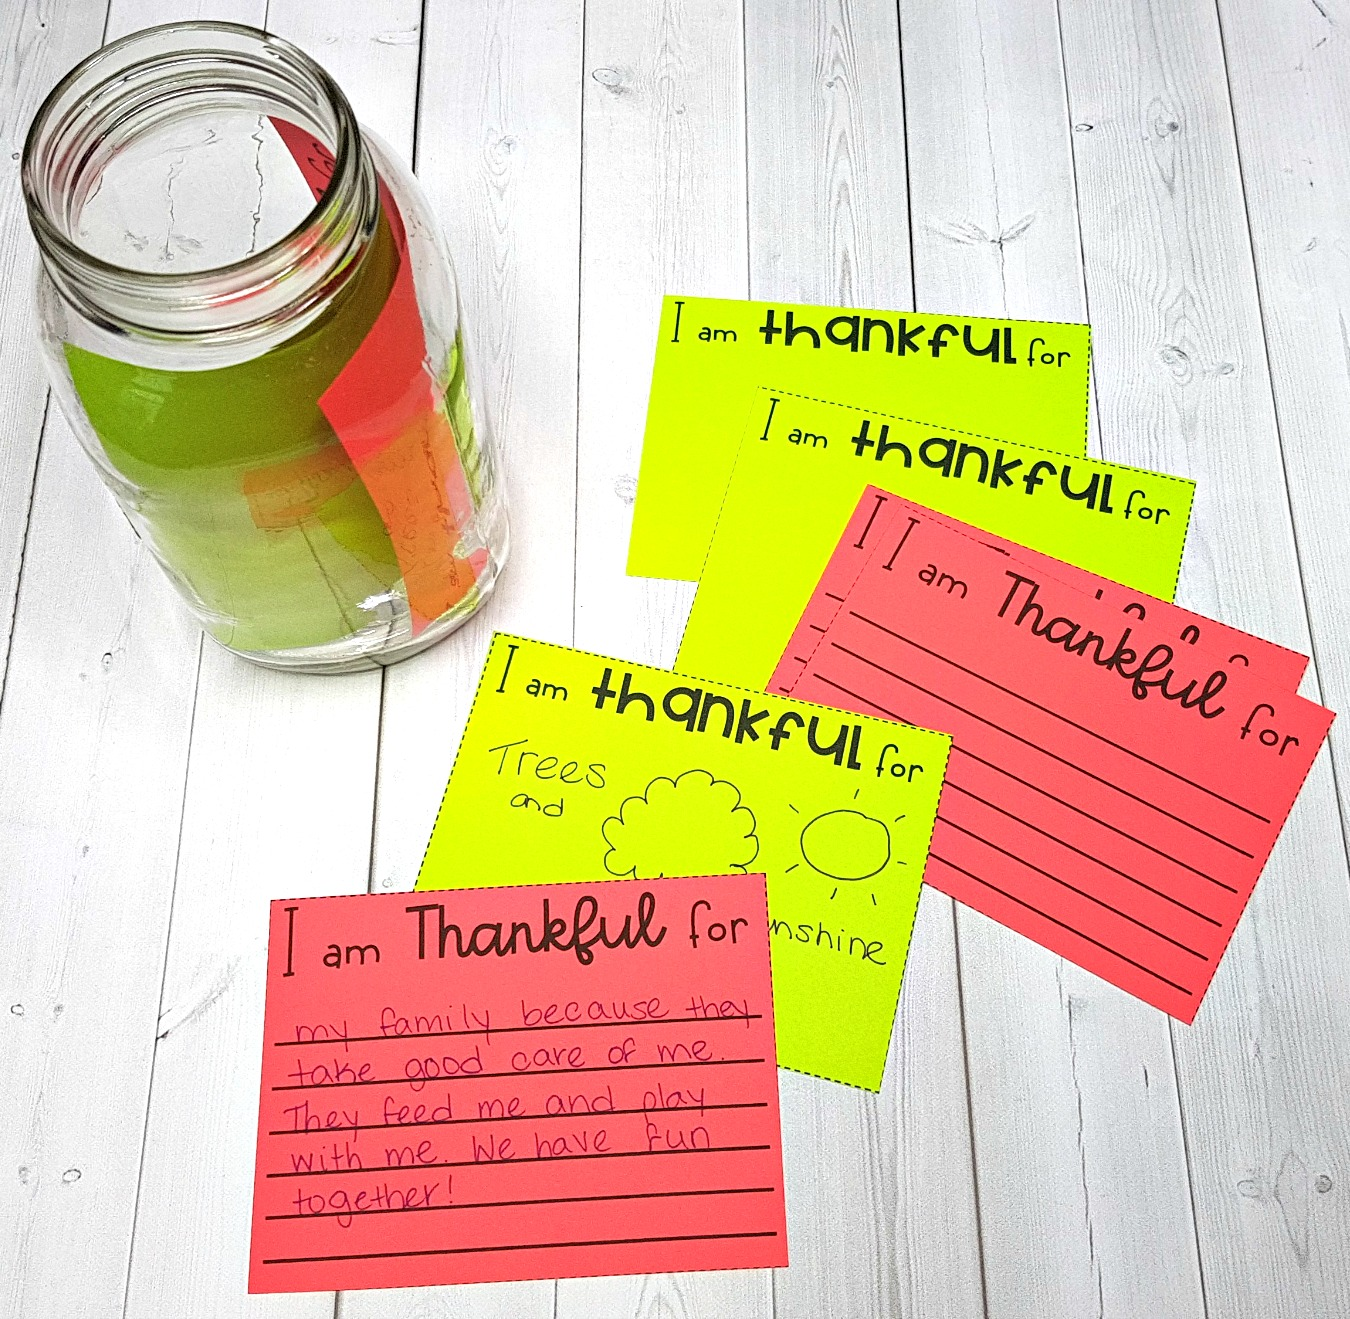 teaching respect - thankful note cards on table with jar